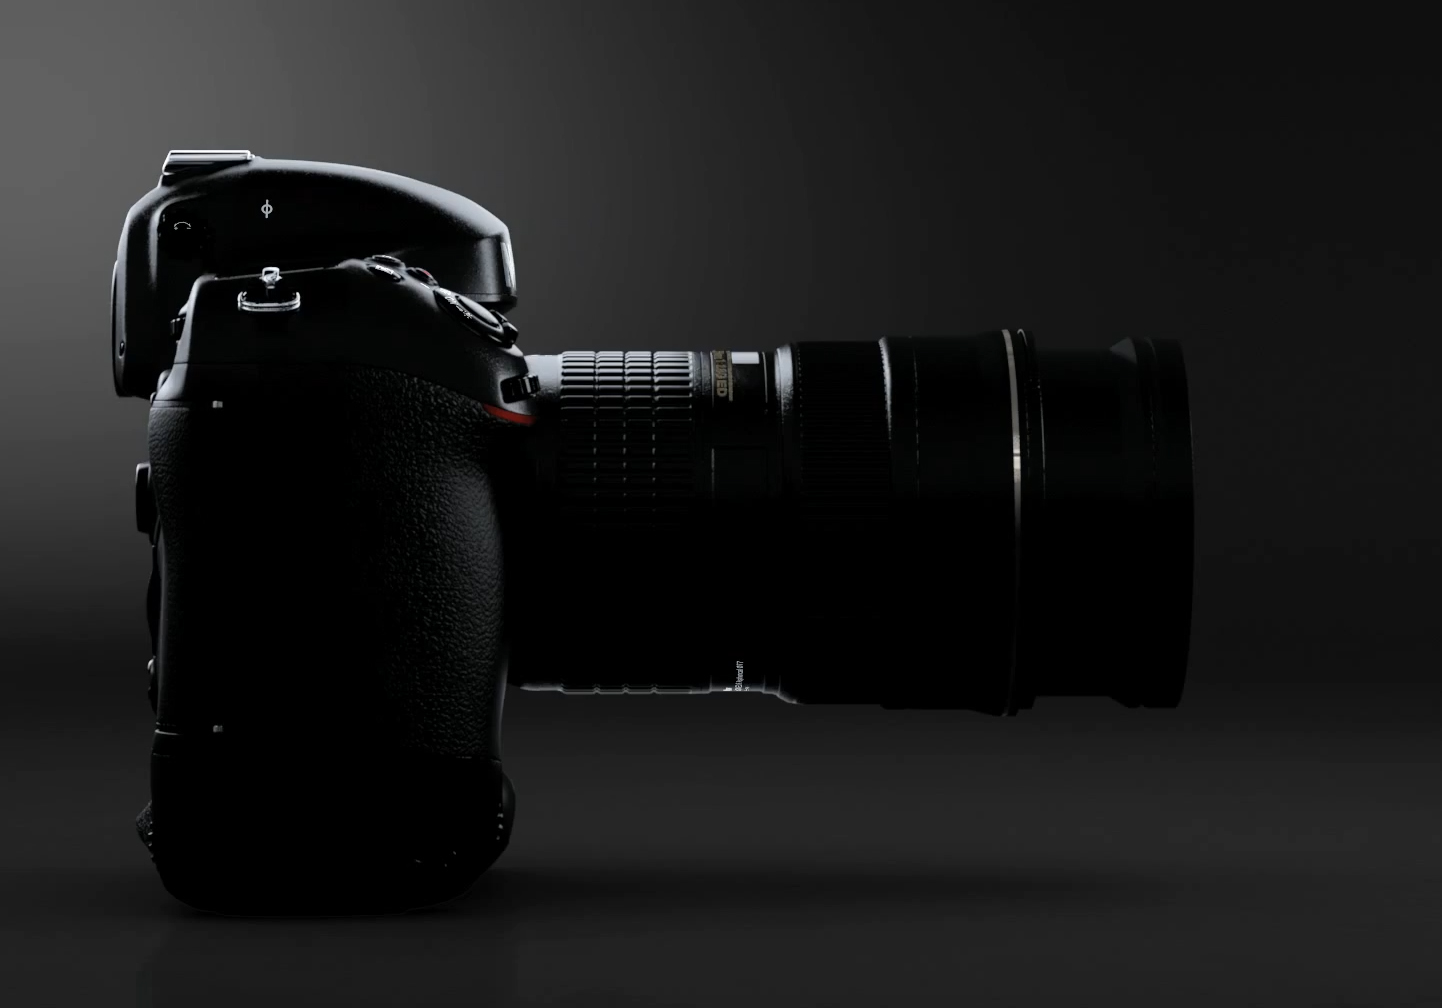 Most Expensive Nikon Camera in the World